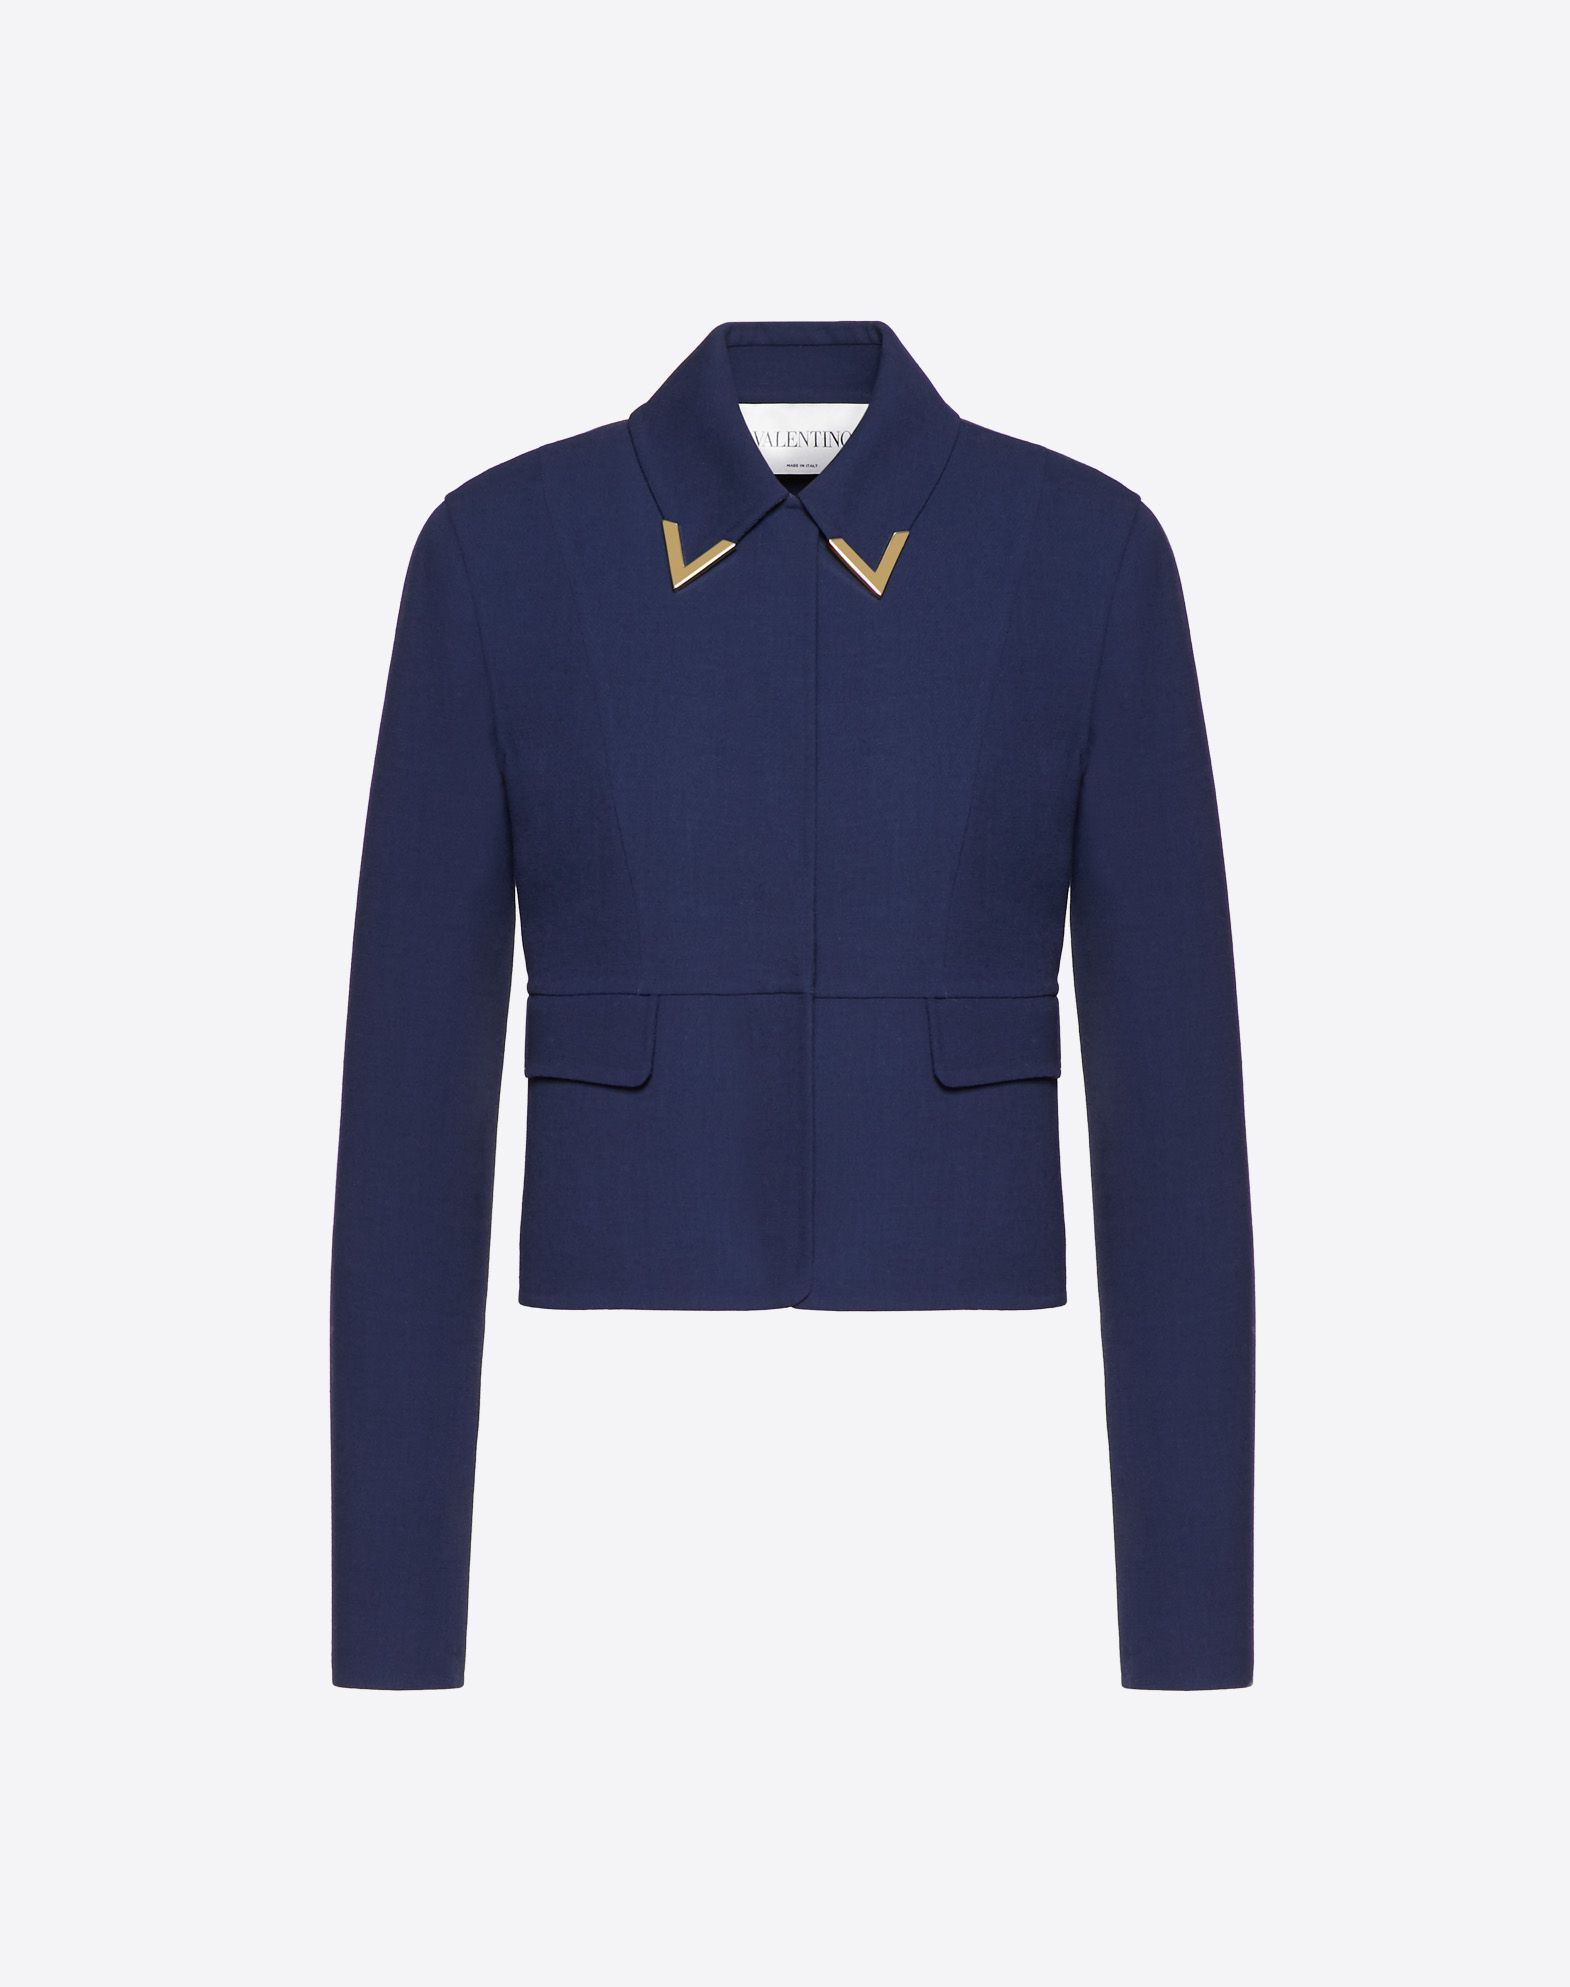 Double Crêpe Wool Jacket with Gold V Detail